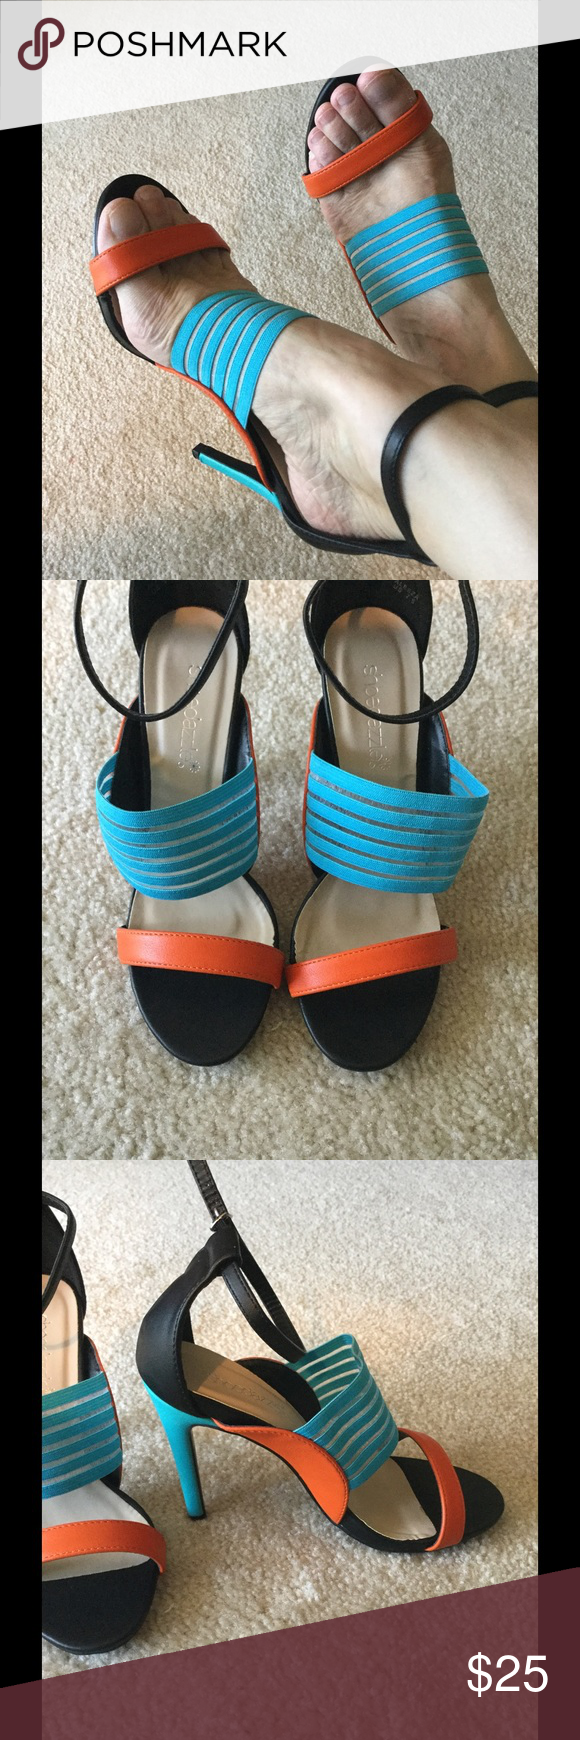 """Black, Orange and Turquoise Sandals BNWOB Turquoise strap is elastic for a nice fit, size 7.5, heel 4.25"""" Shoe Dazzle Shoes Heels"""